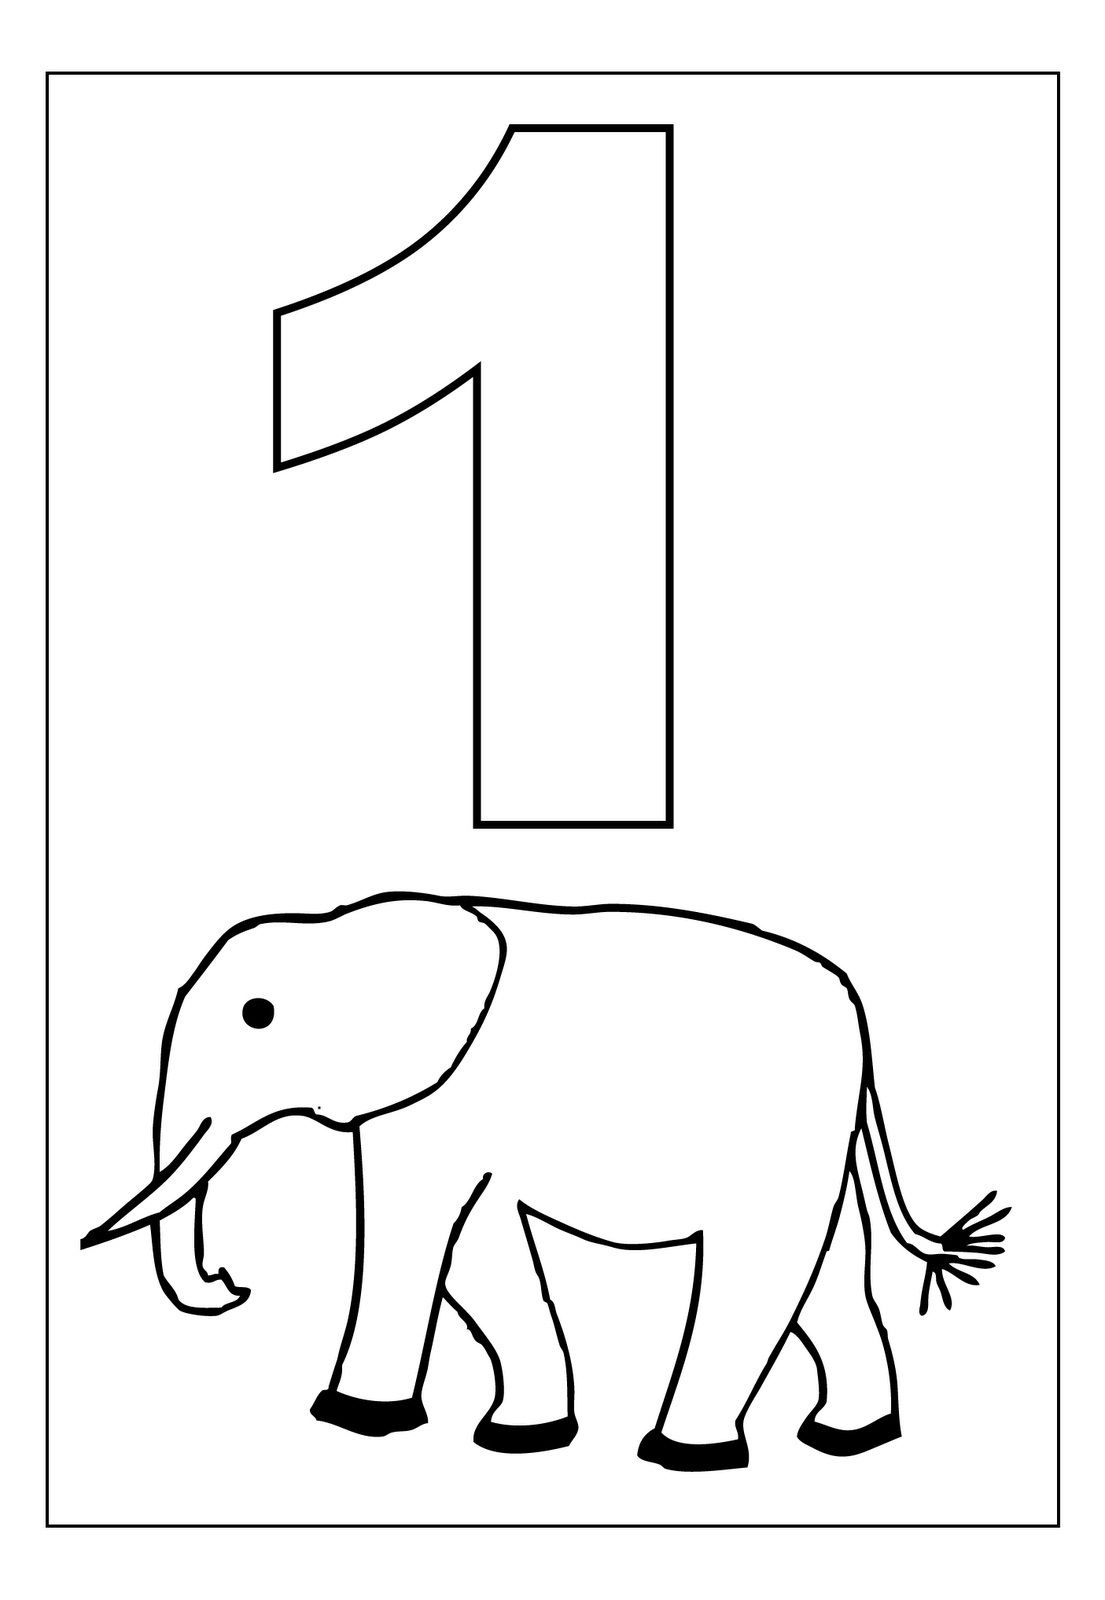 Free Printable Number Coloring Pages For Kids Sketch Coloring Page